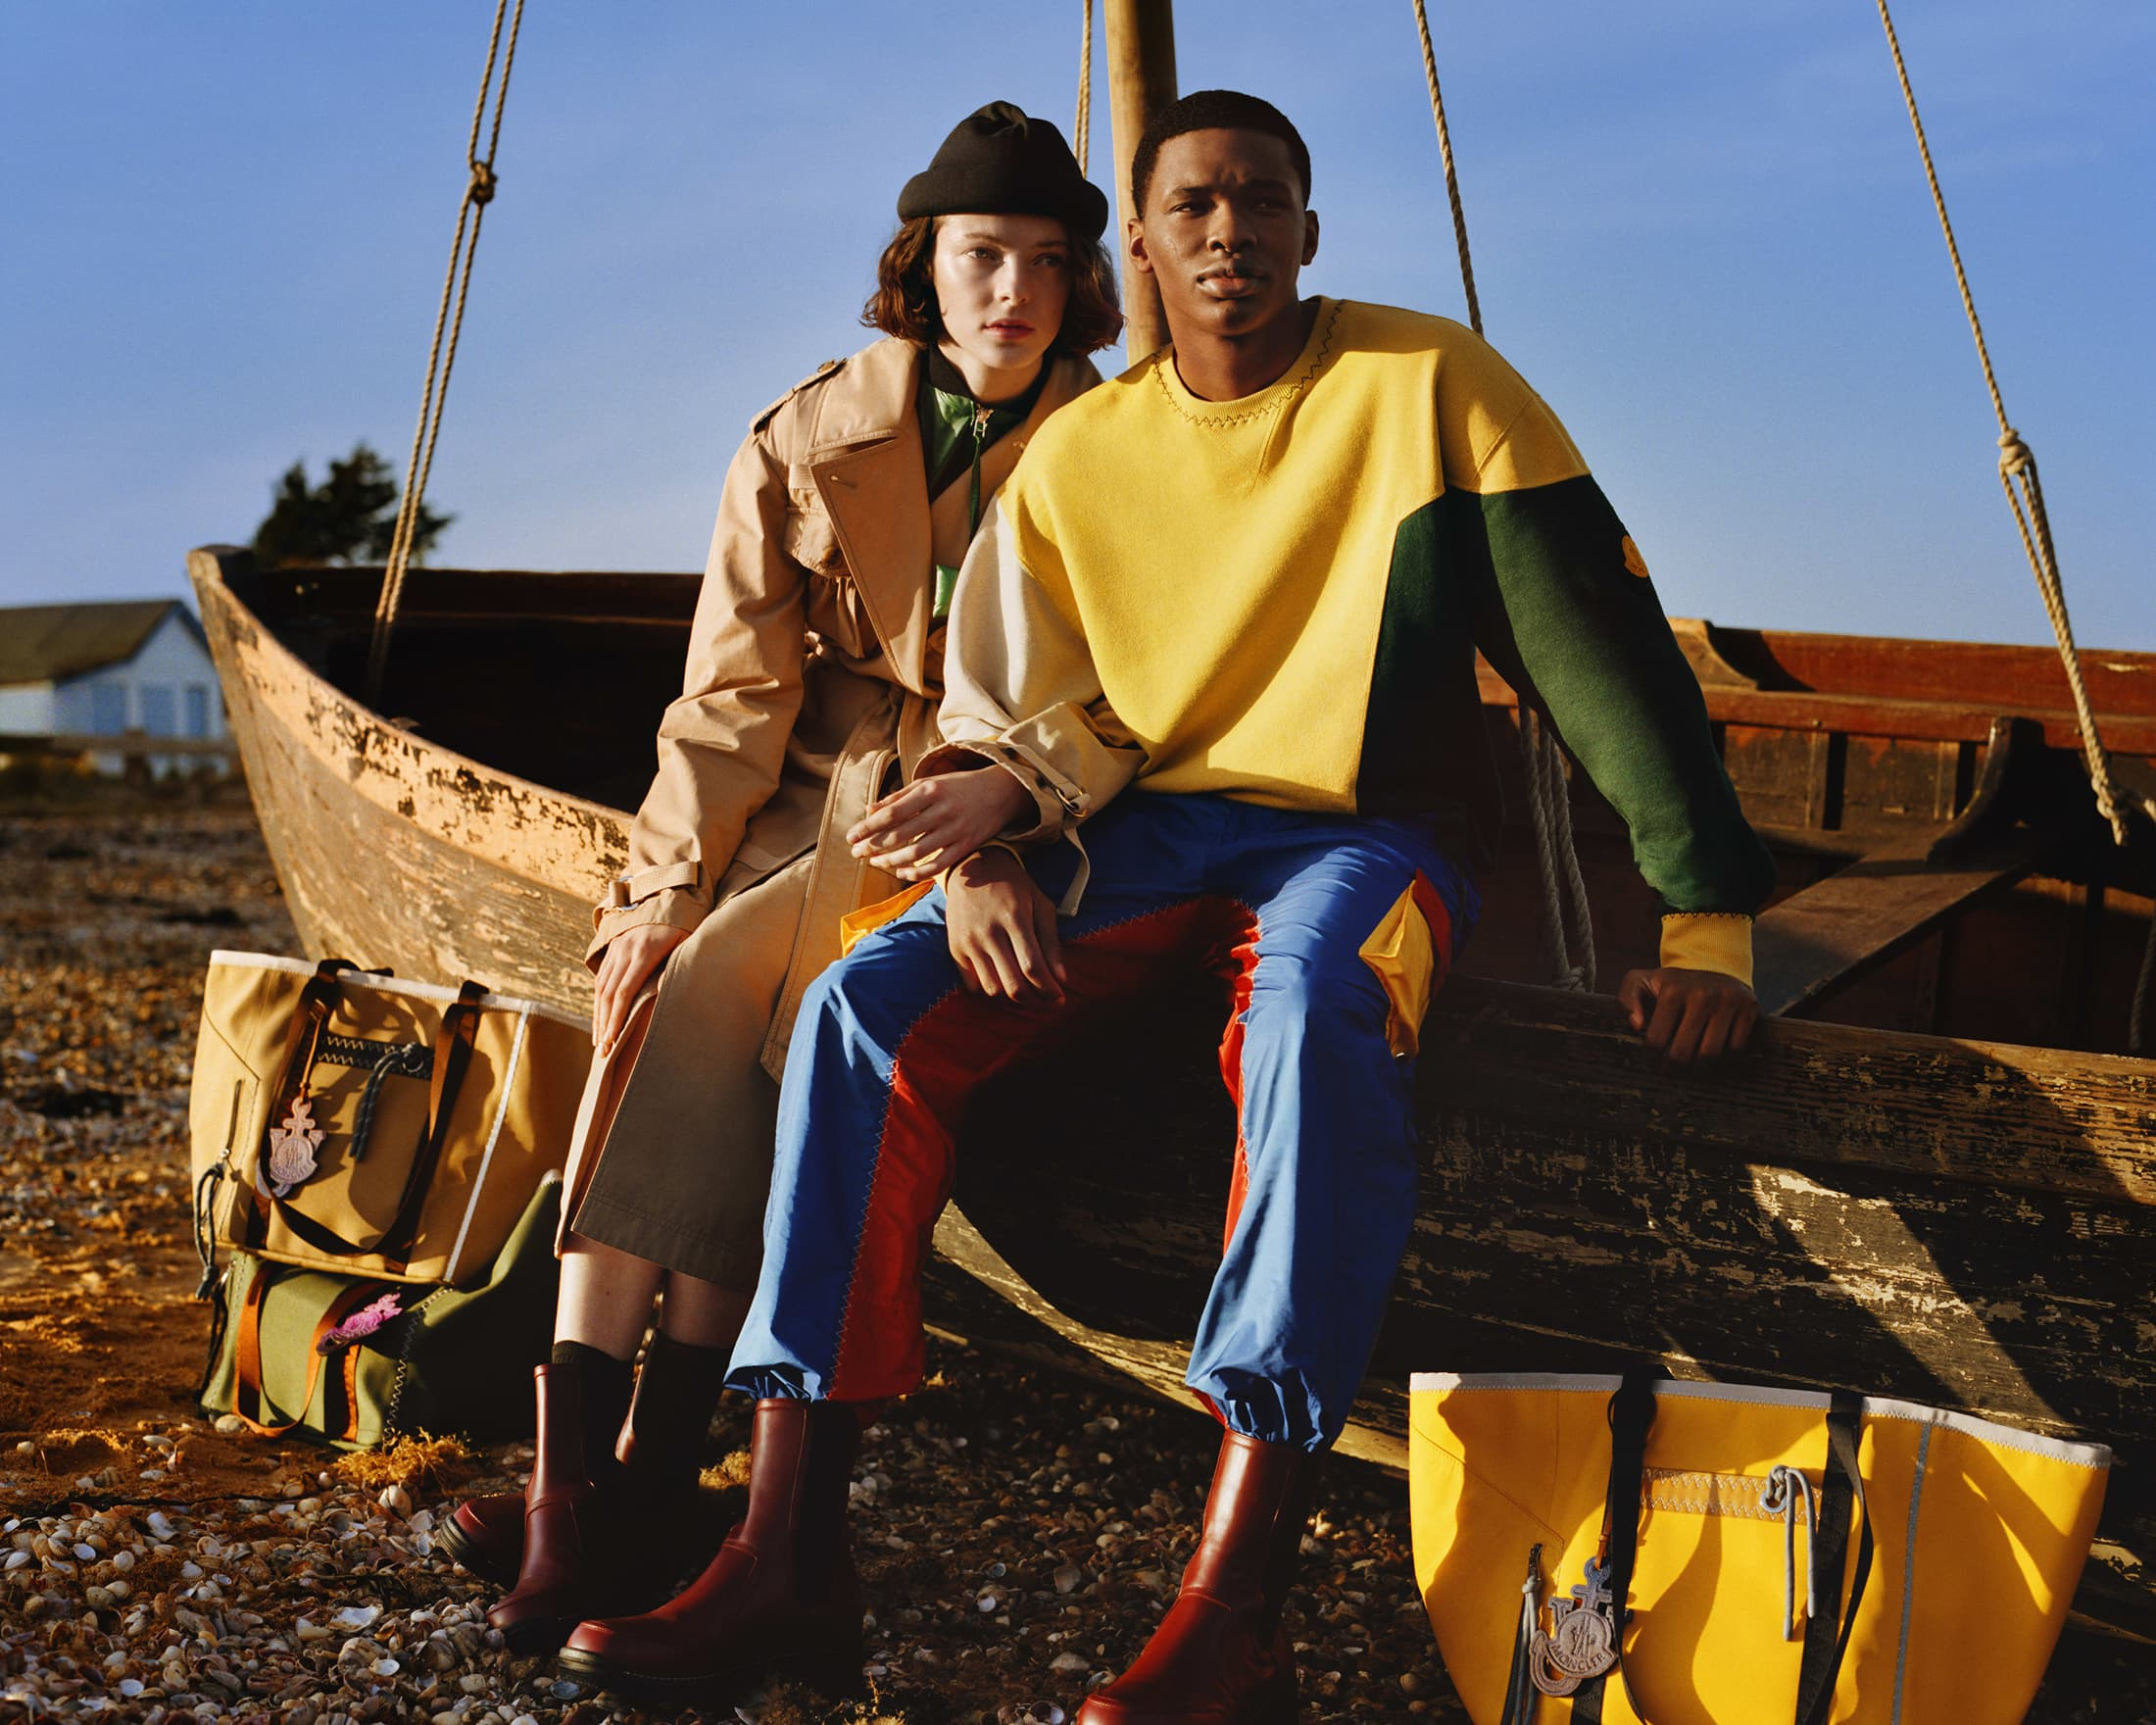 Moncler x JW Anderson Launches Multi-Media Approach For 2nd Capsule